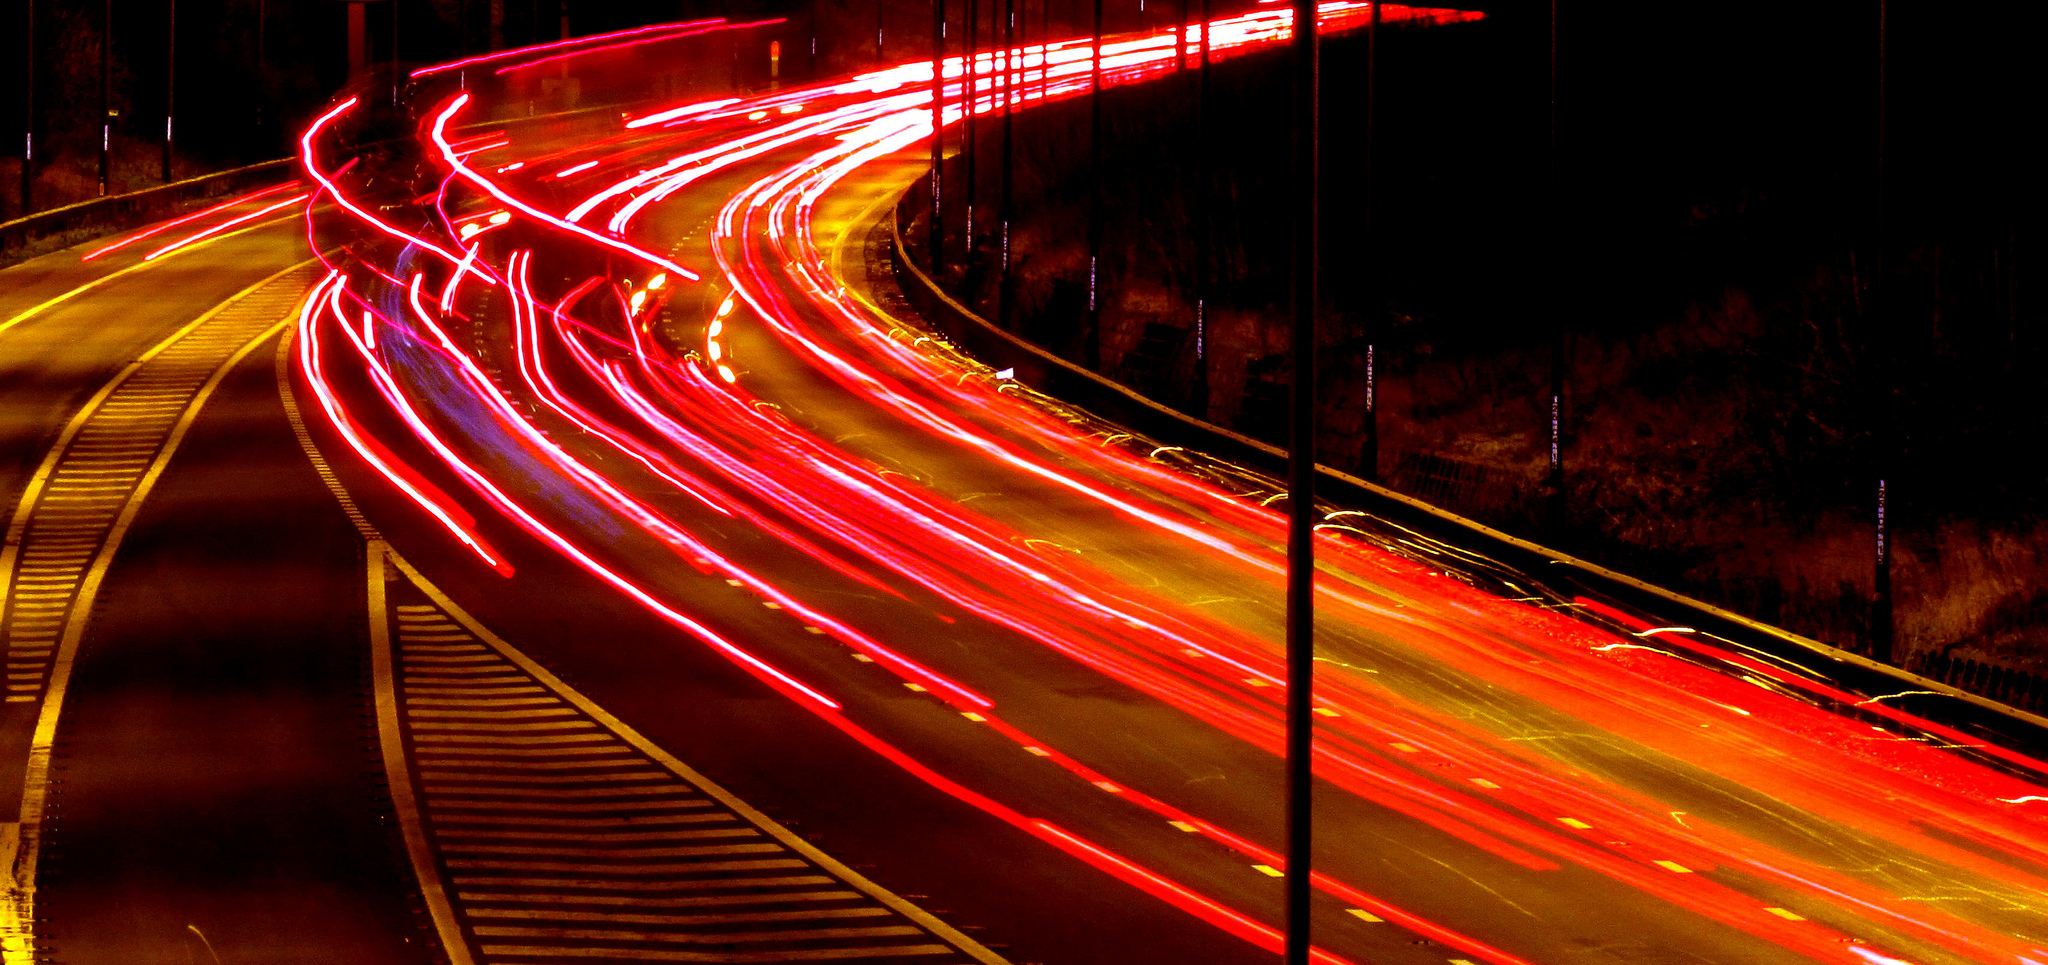 Speed of light photo